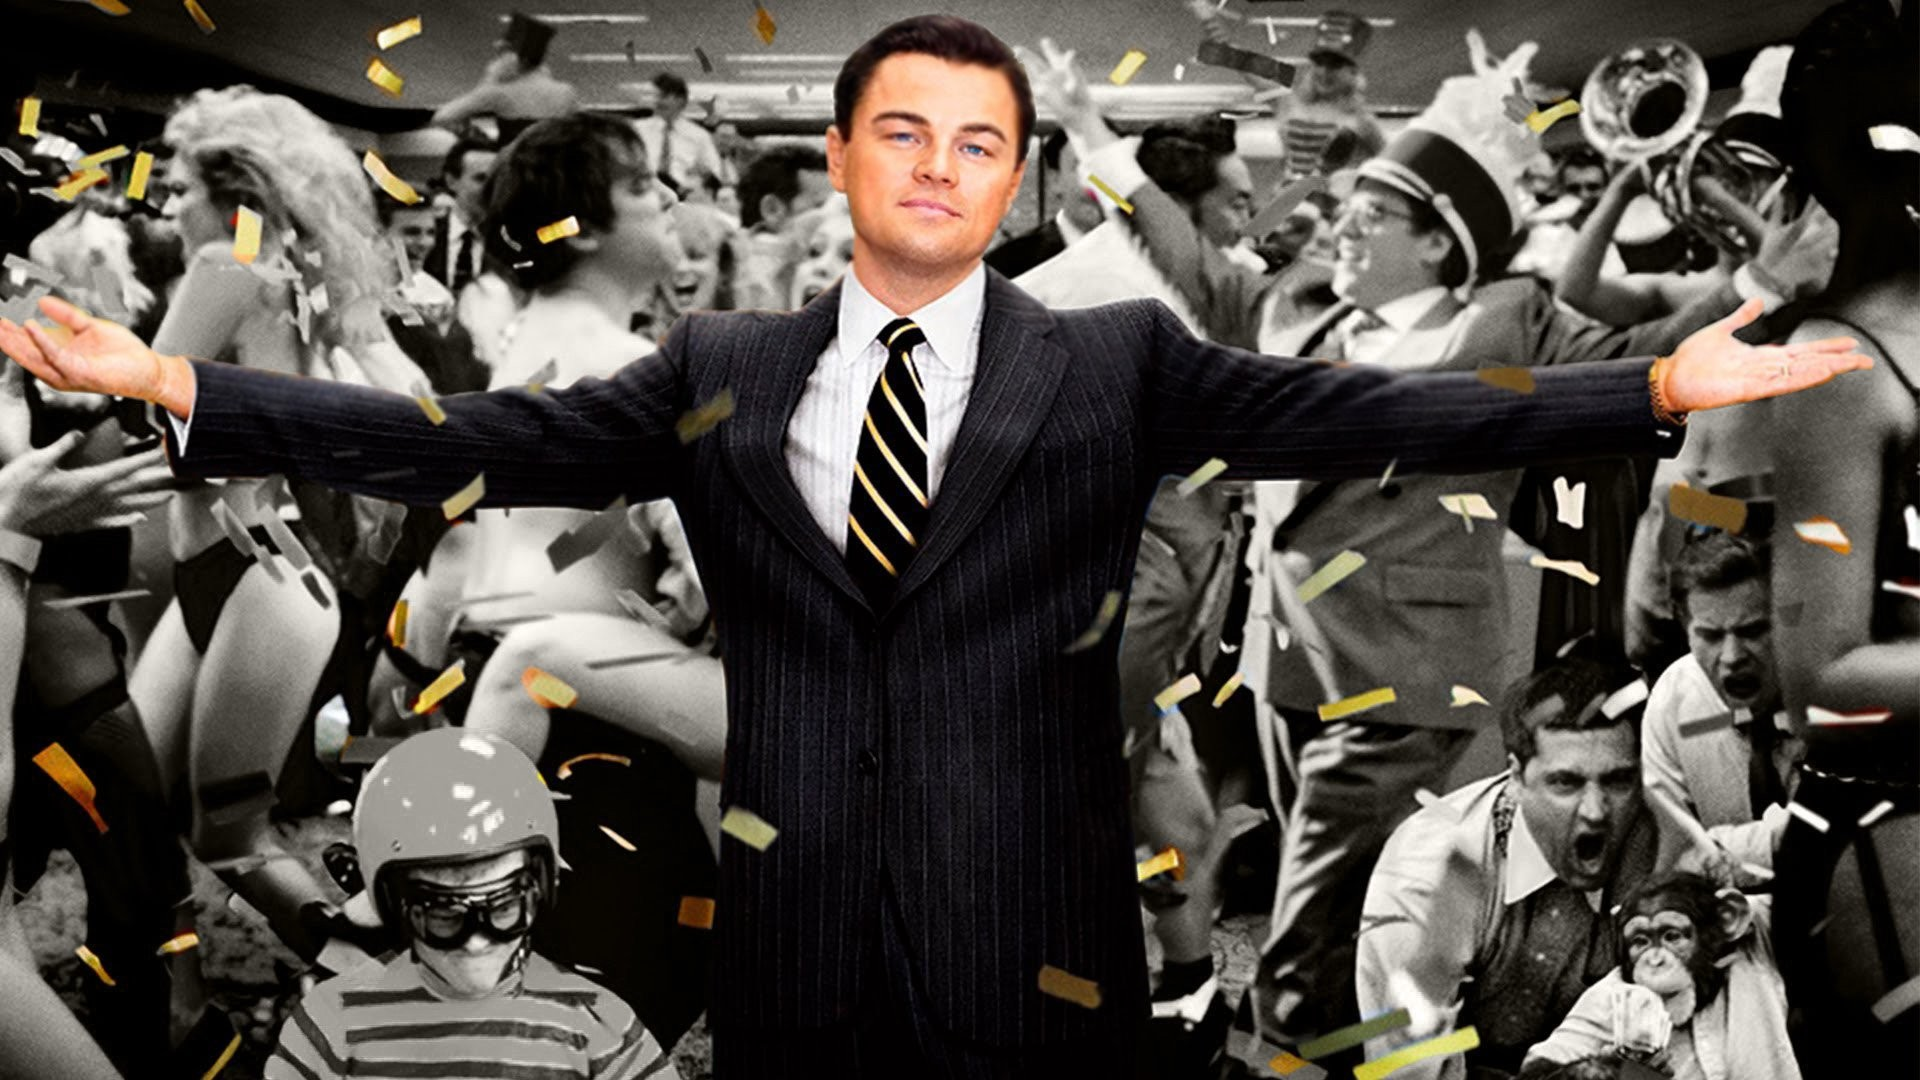 1920x1080 Movie - The Wolf of Wall Street Leonardo Dicaprio Wallpaper